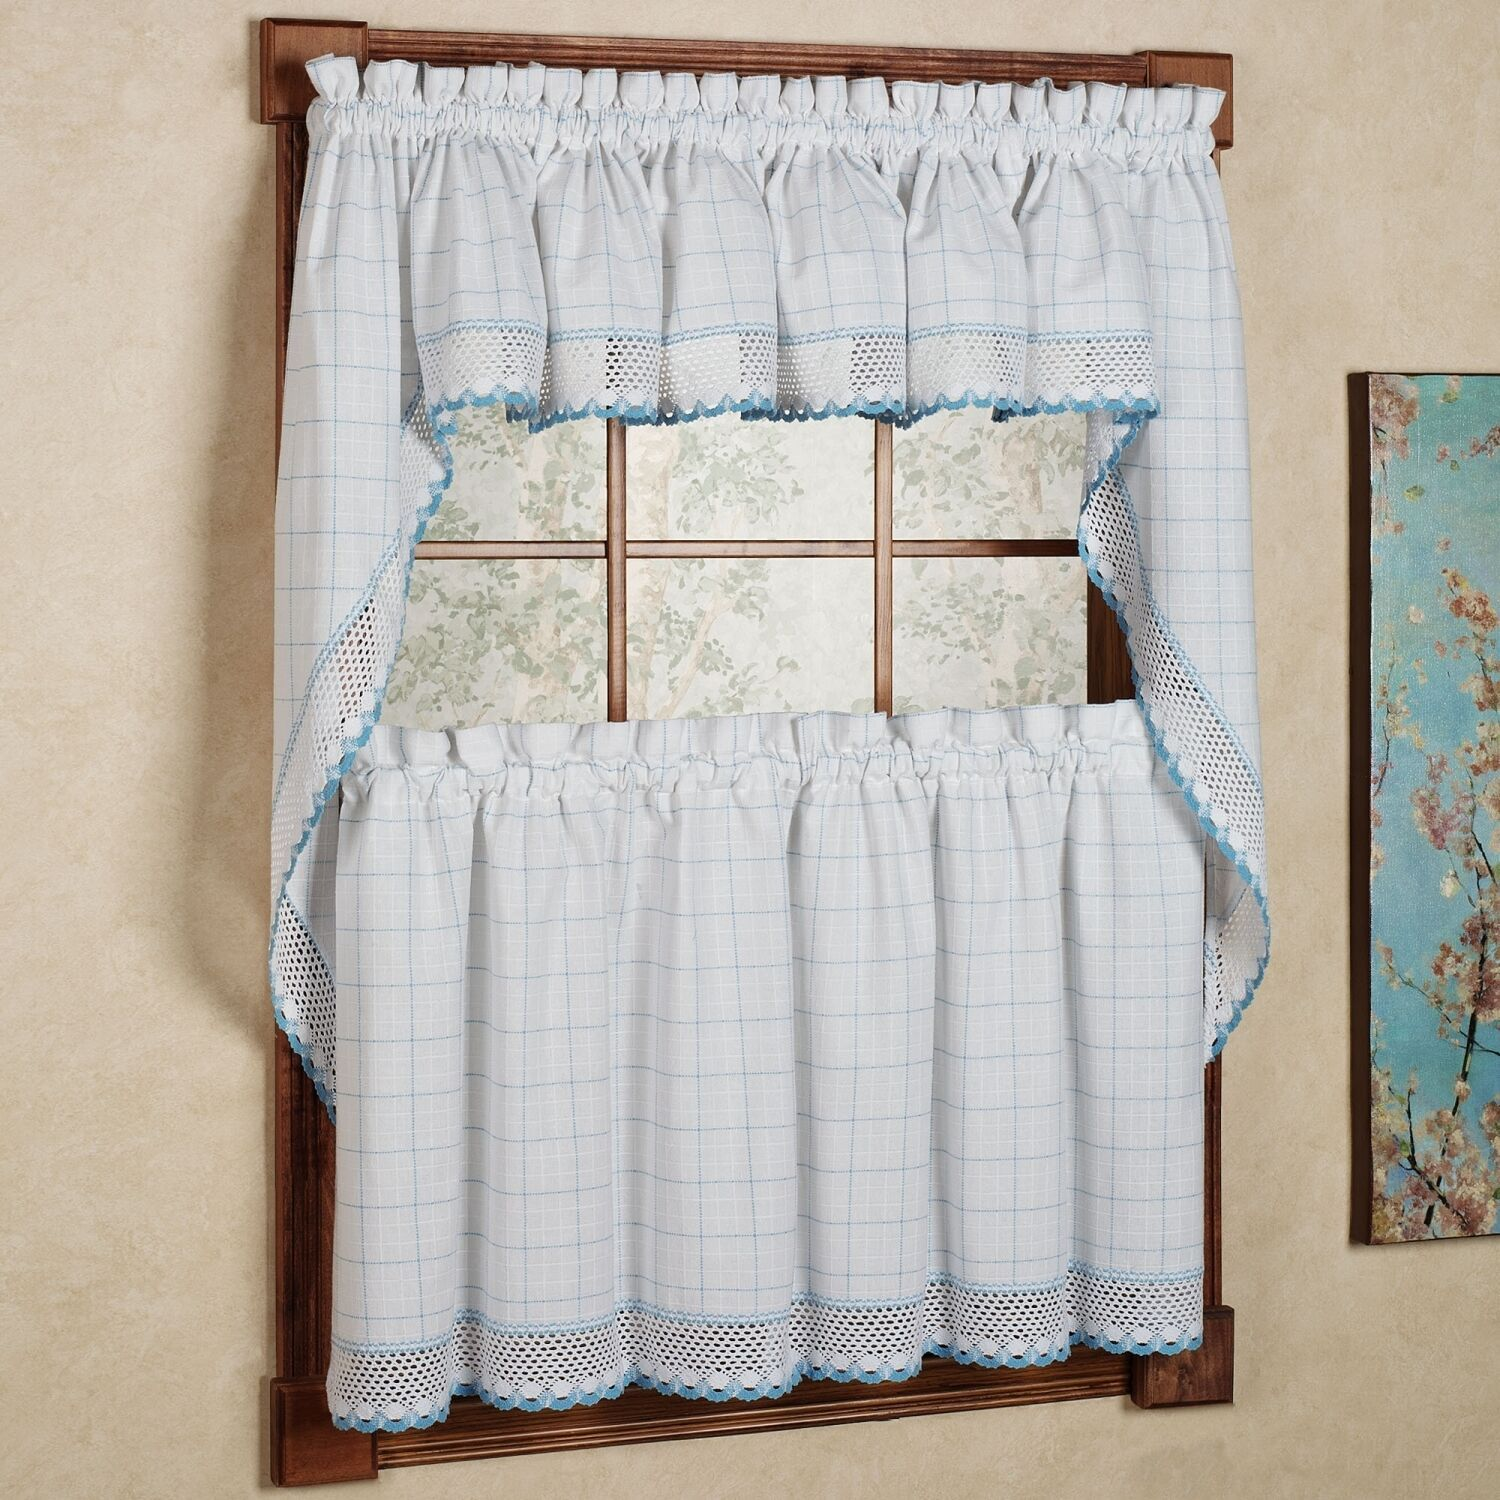 Adirondack Cotton Kitchen Window Curtains - White/Blue - Tiers, Valance or Swag - $16.69 - $18.29